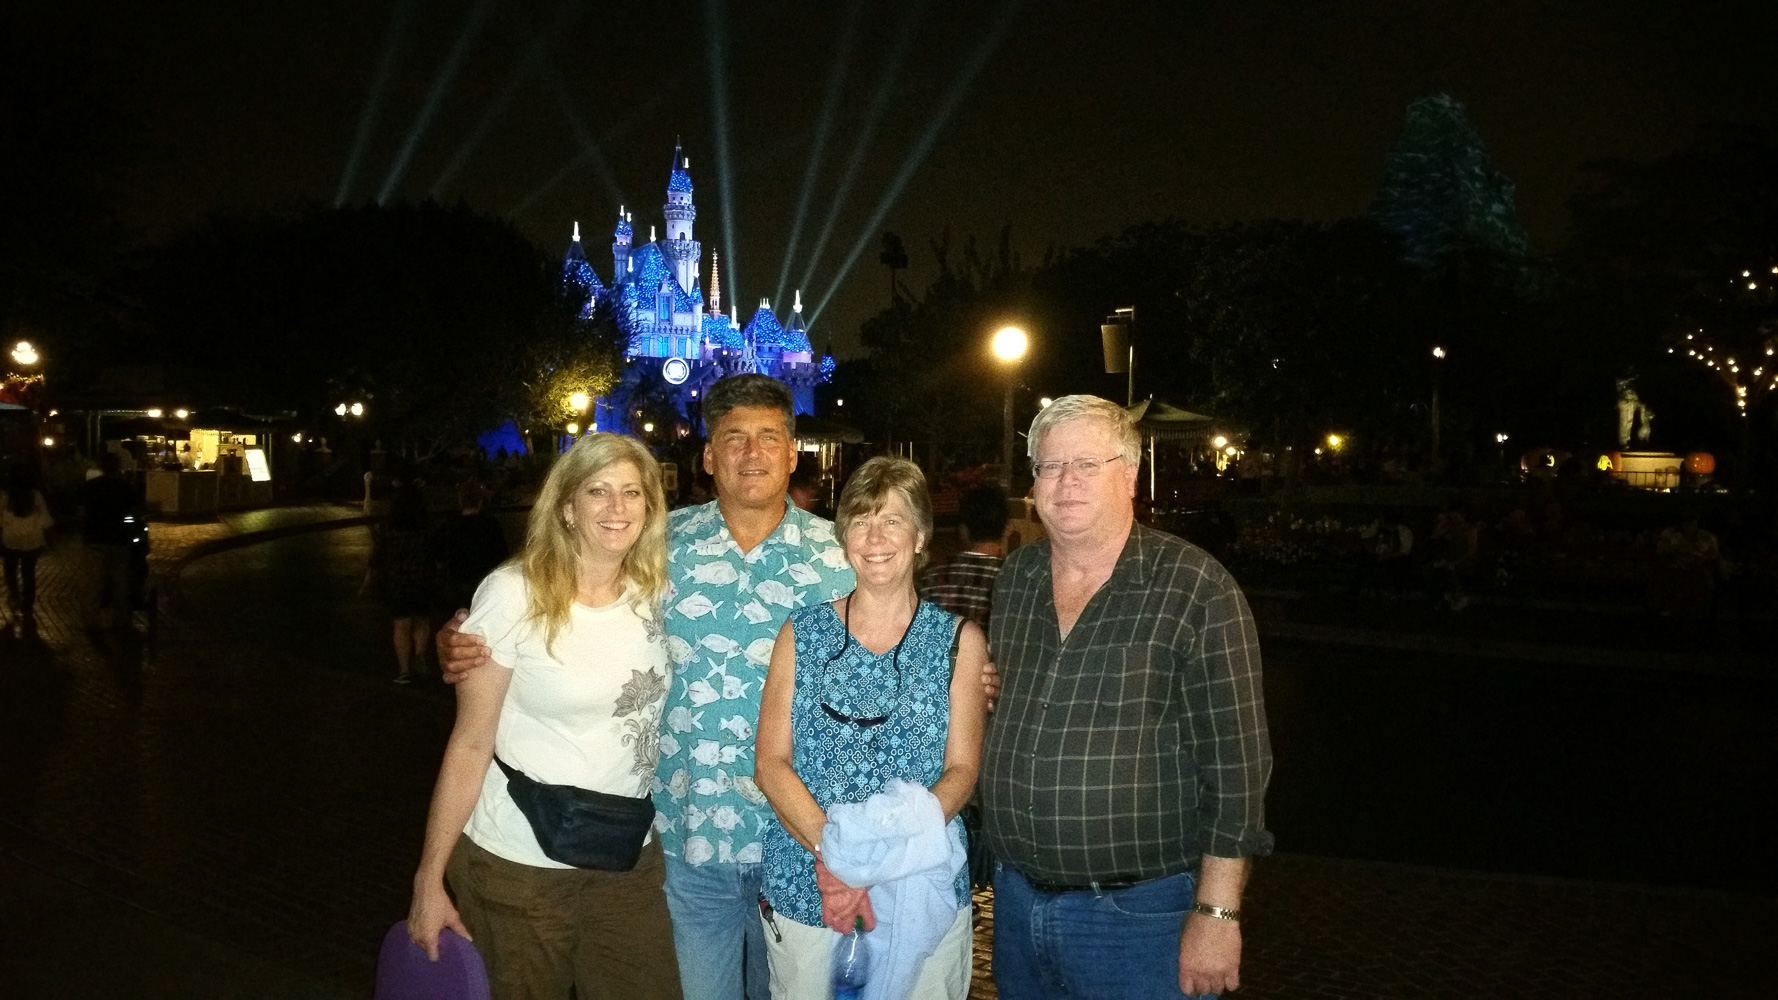 My sisters and brother-in-law in front of Slleping Beauty's castle.